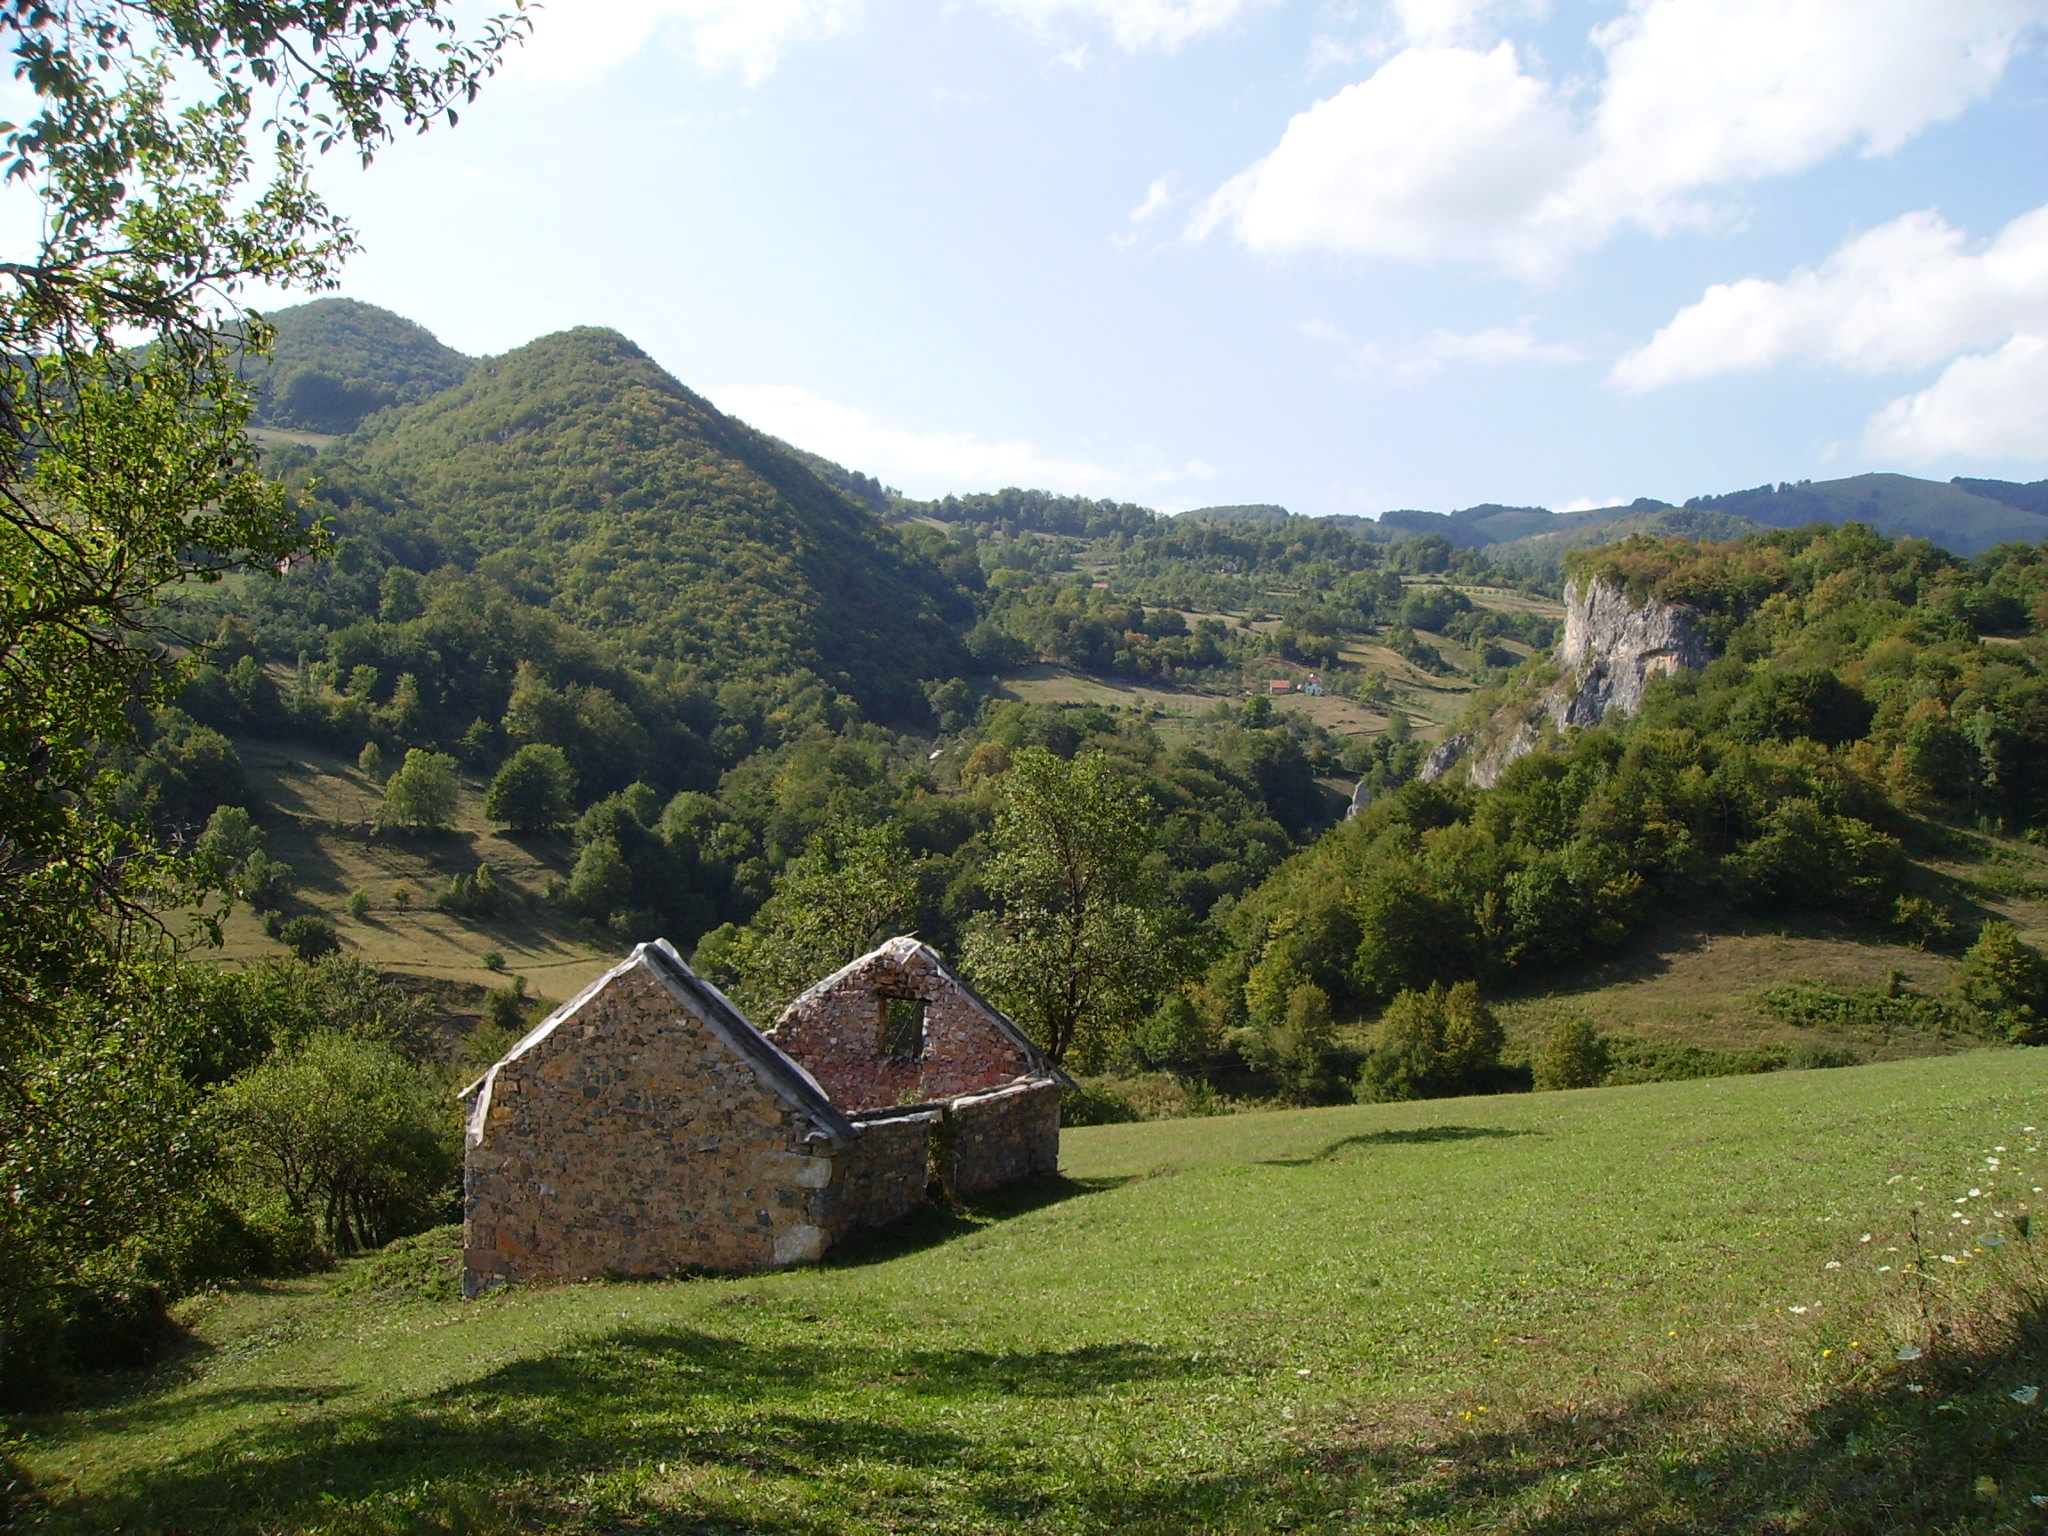 File:Dimitor Mountain Landscape.jpg